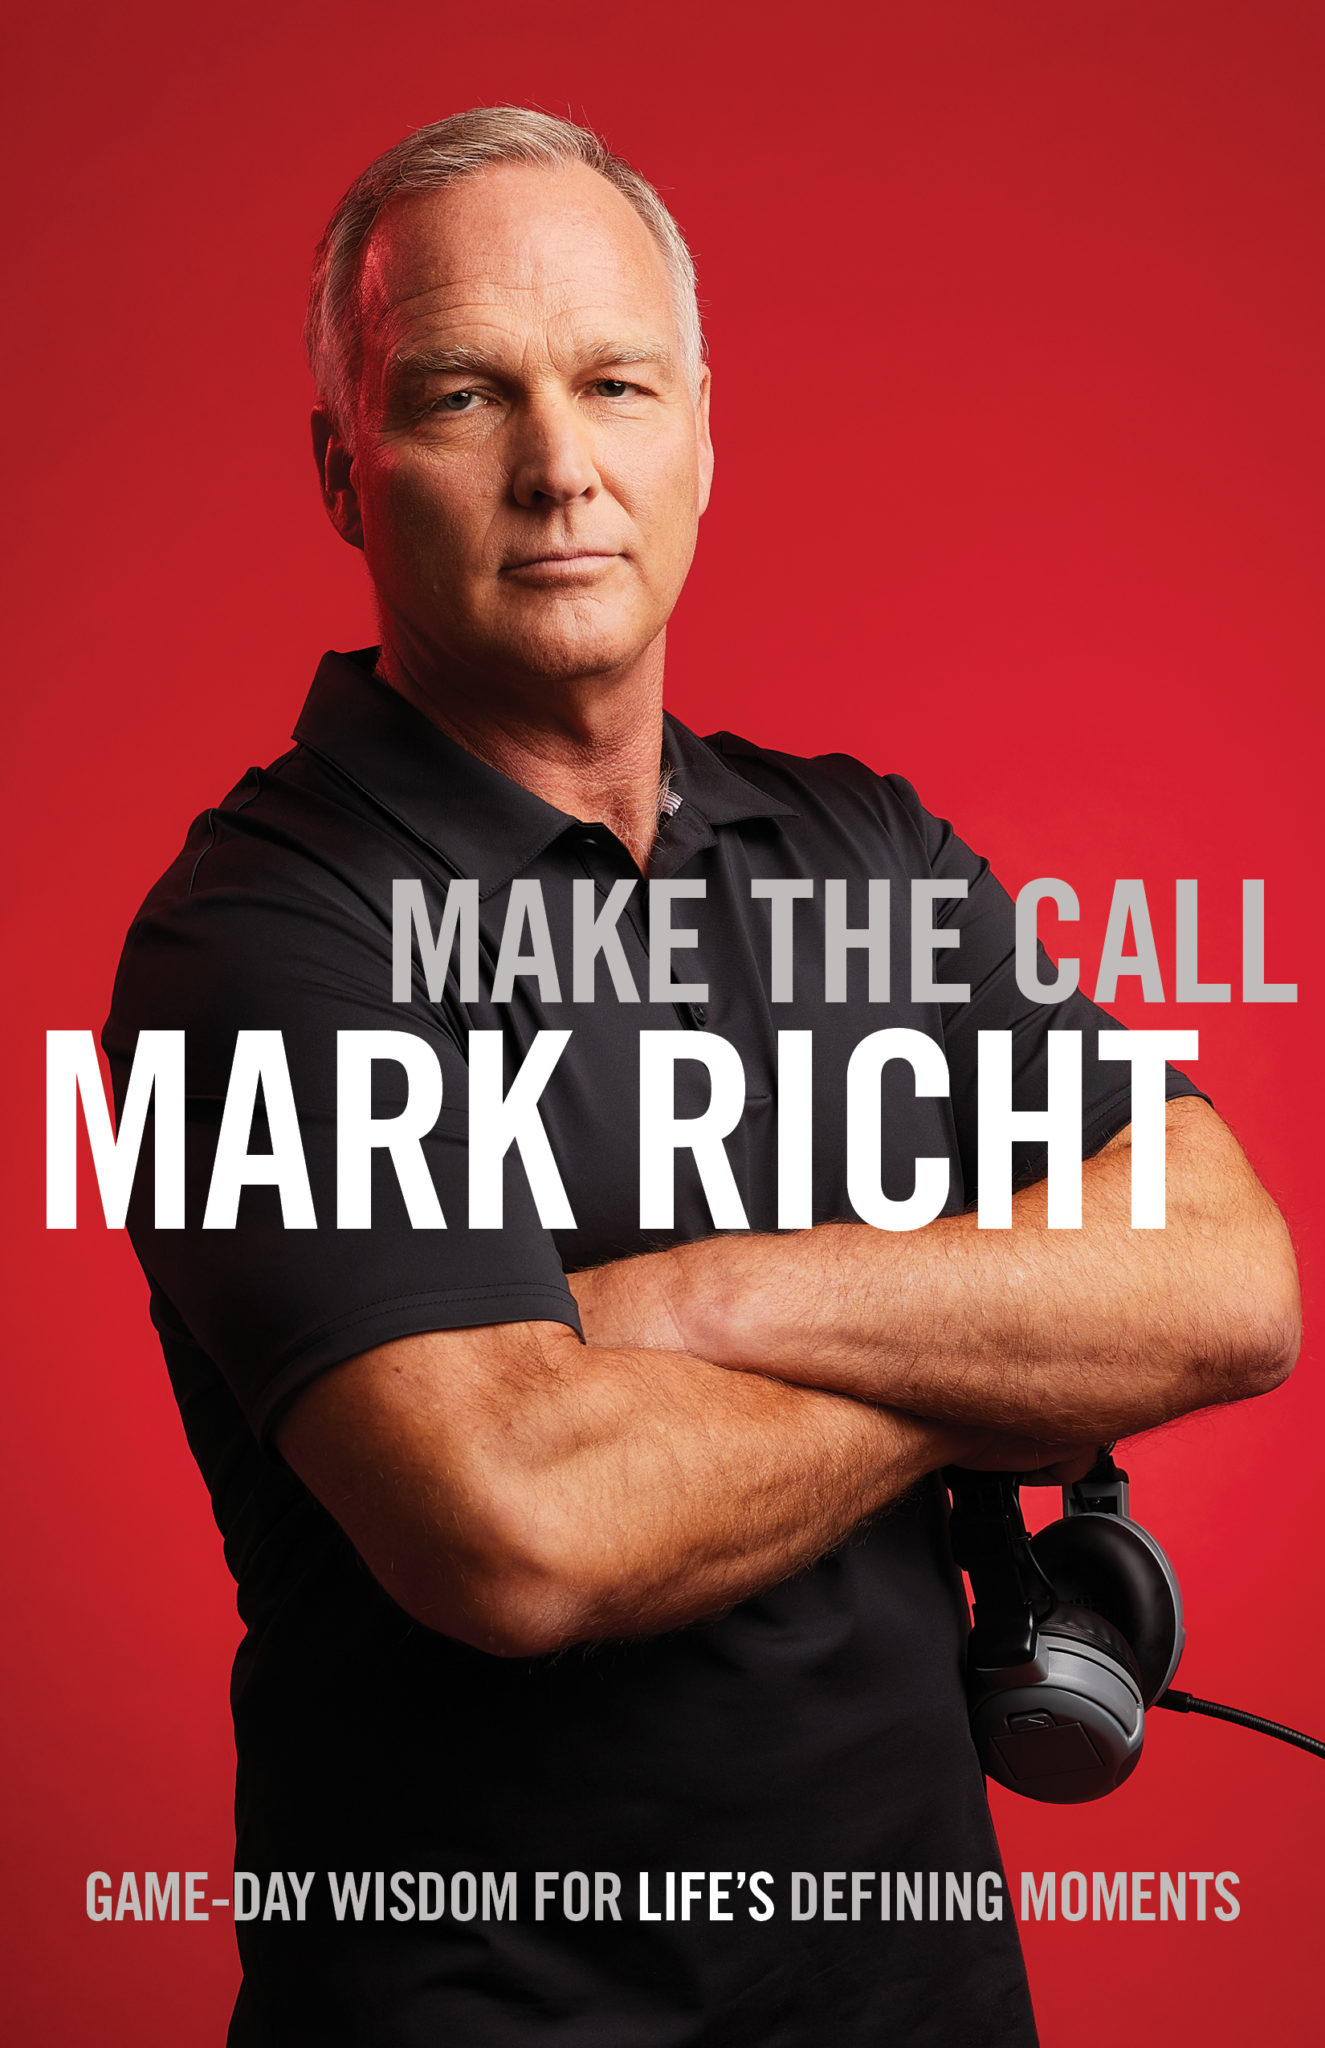 B&H to release football coach Mark Richt's first book 'Make the Call'